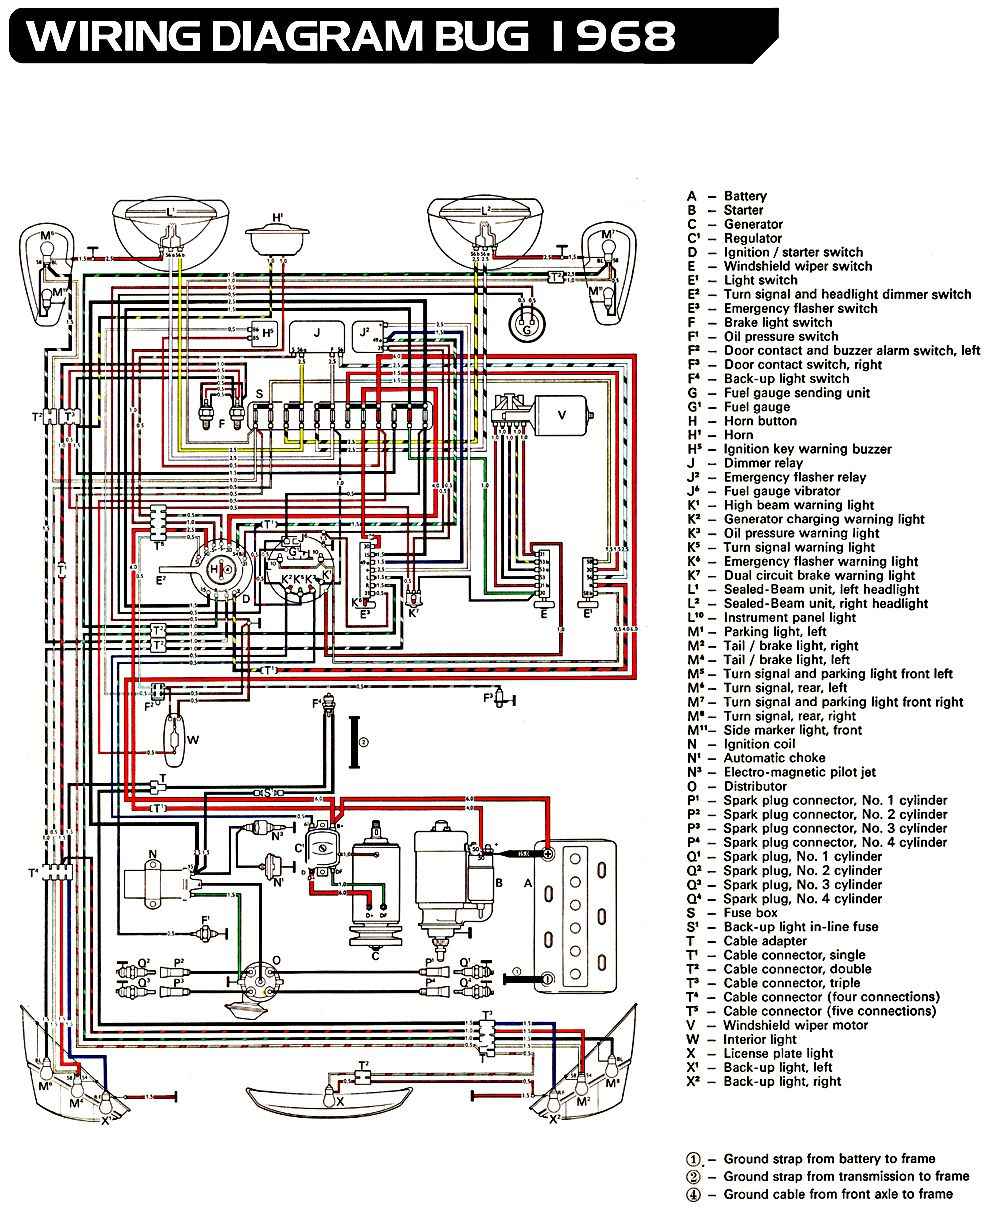 medium resolution of 1971 vw wiring diagram wiring diagram inside 1971 vw karmann ghia wiring diagram 1971 vw wiring diagram